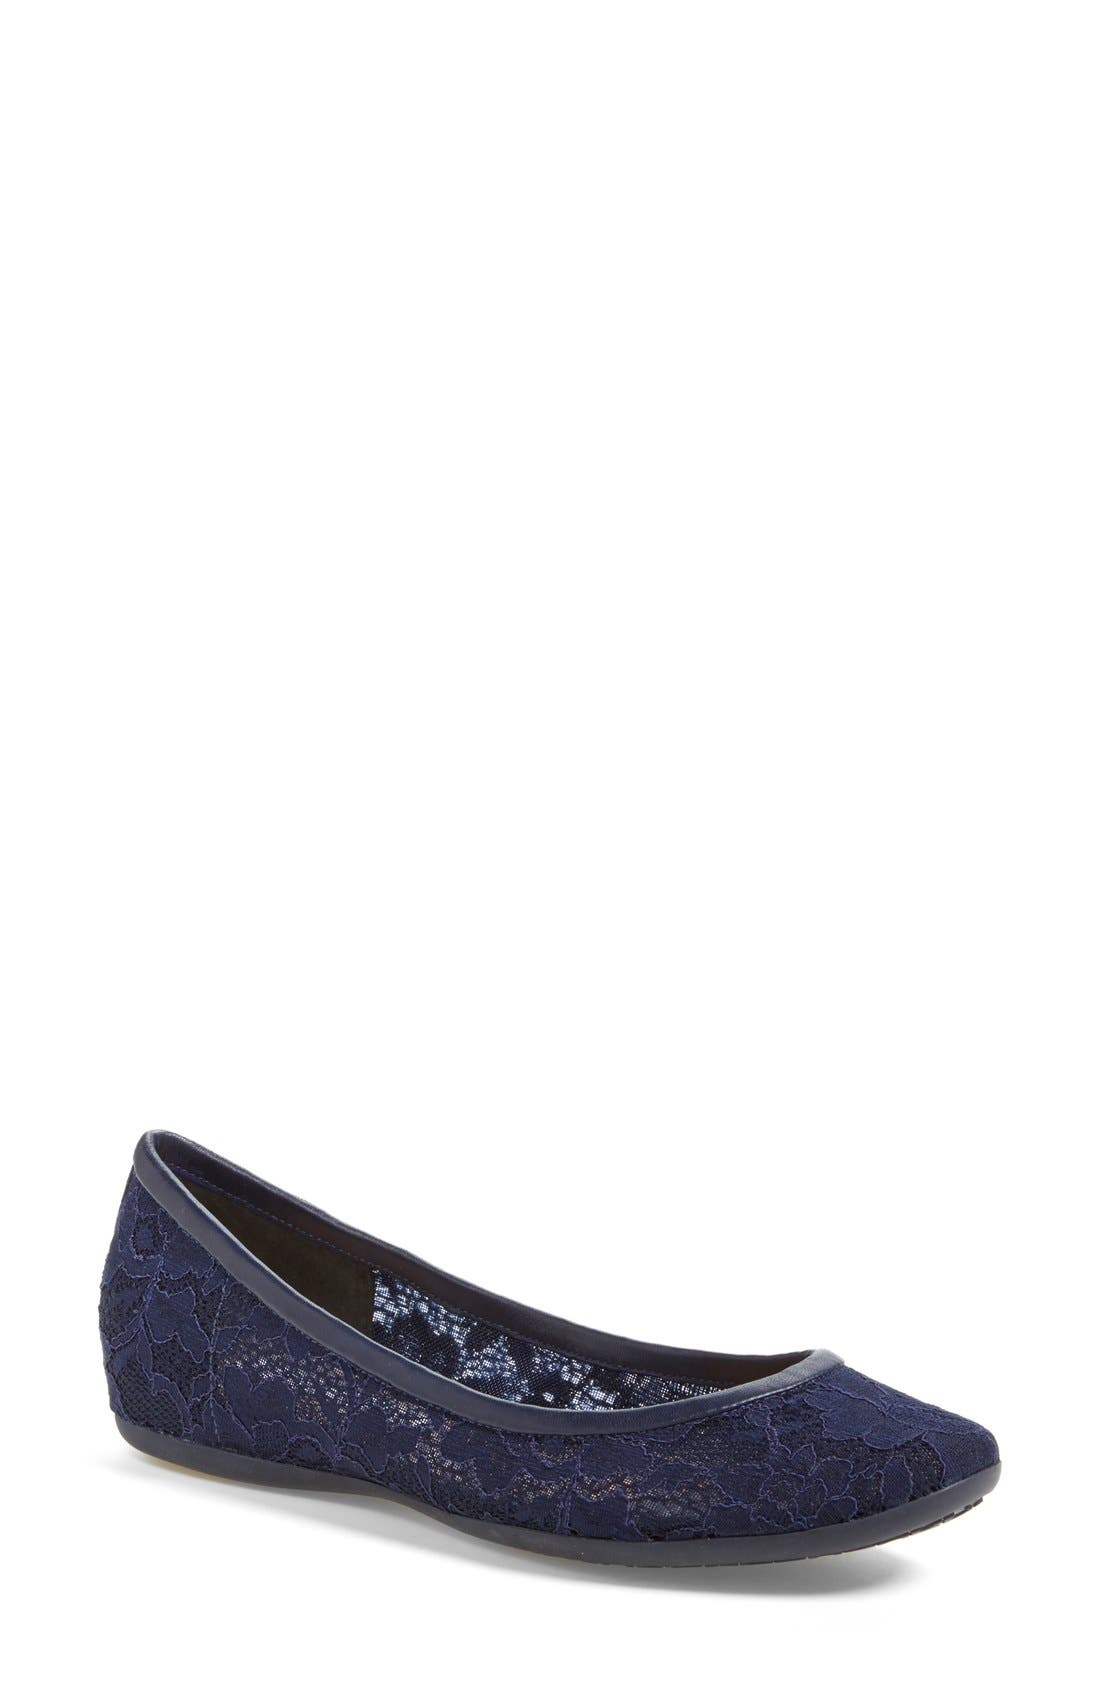 Alternate Image 1 Selected - Diane von Furstenberg 'Marano' Lace Ballet Flat (Women)